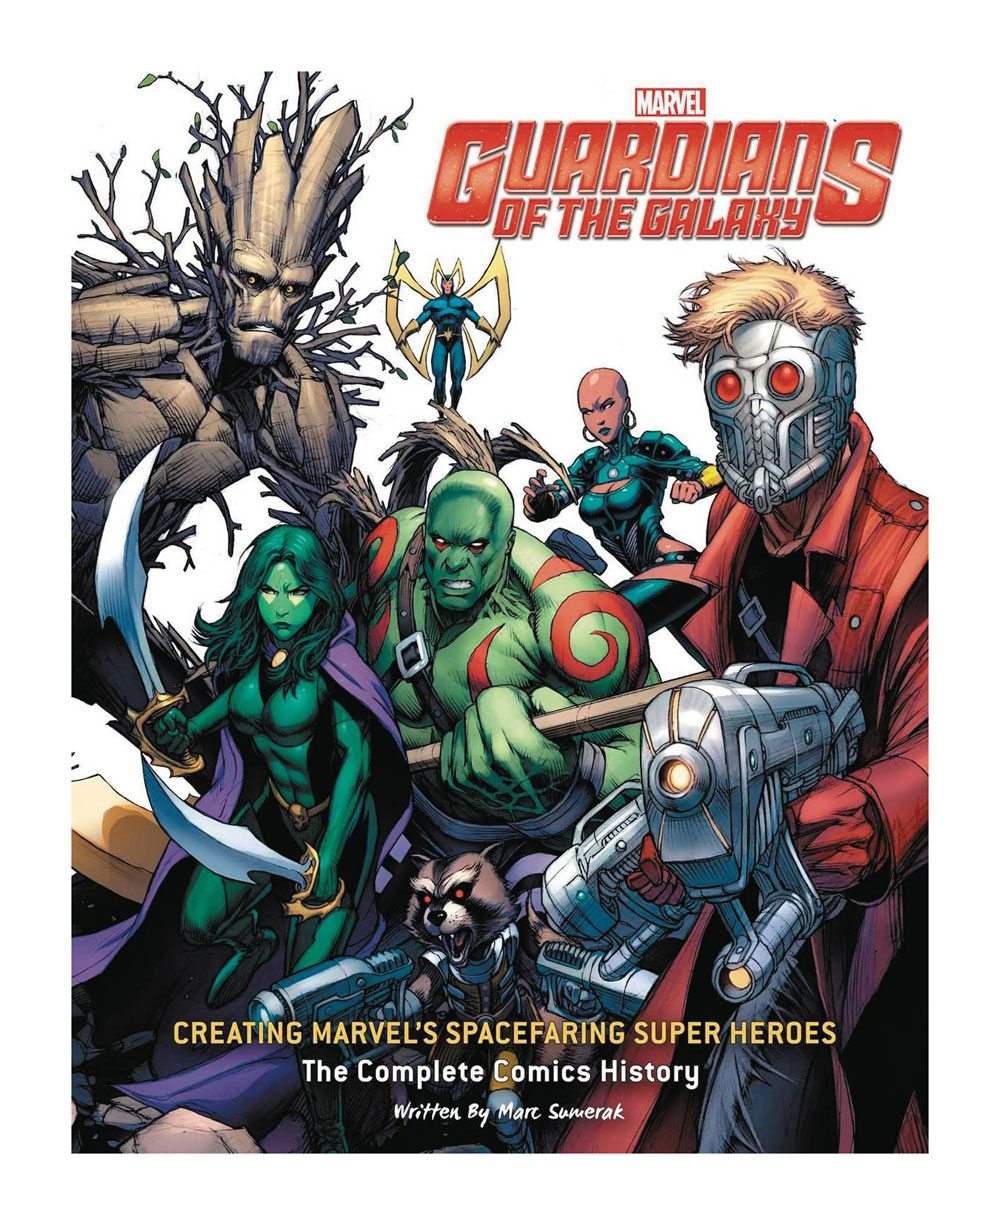 Guardians of the Galaxy Art Book Creating Marvel's Spacefaring Super Heroes